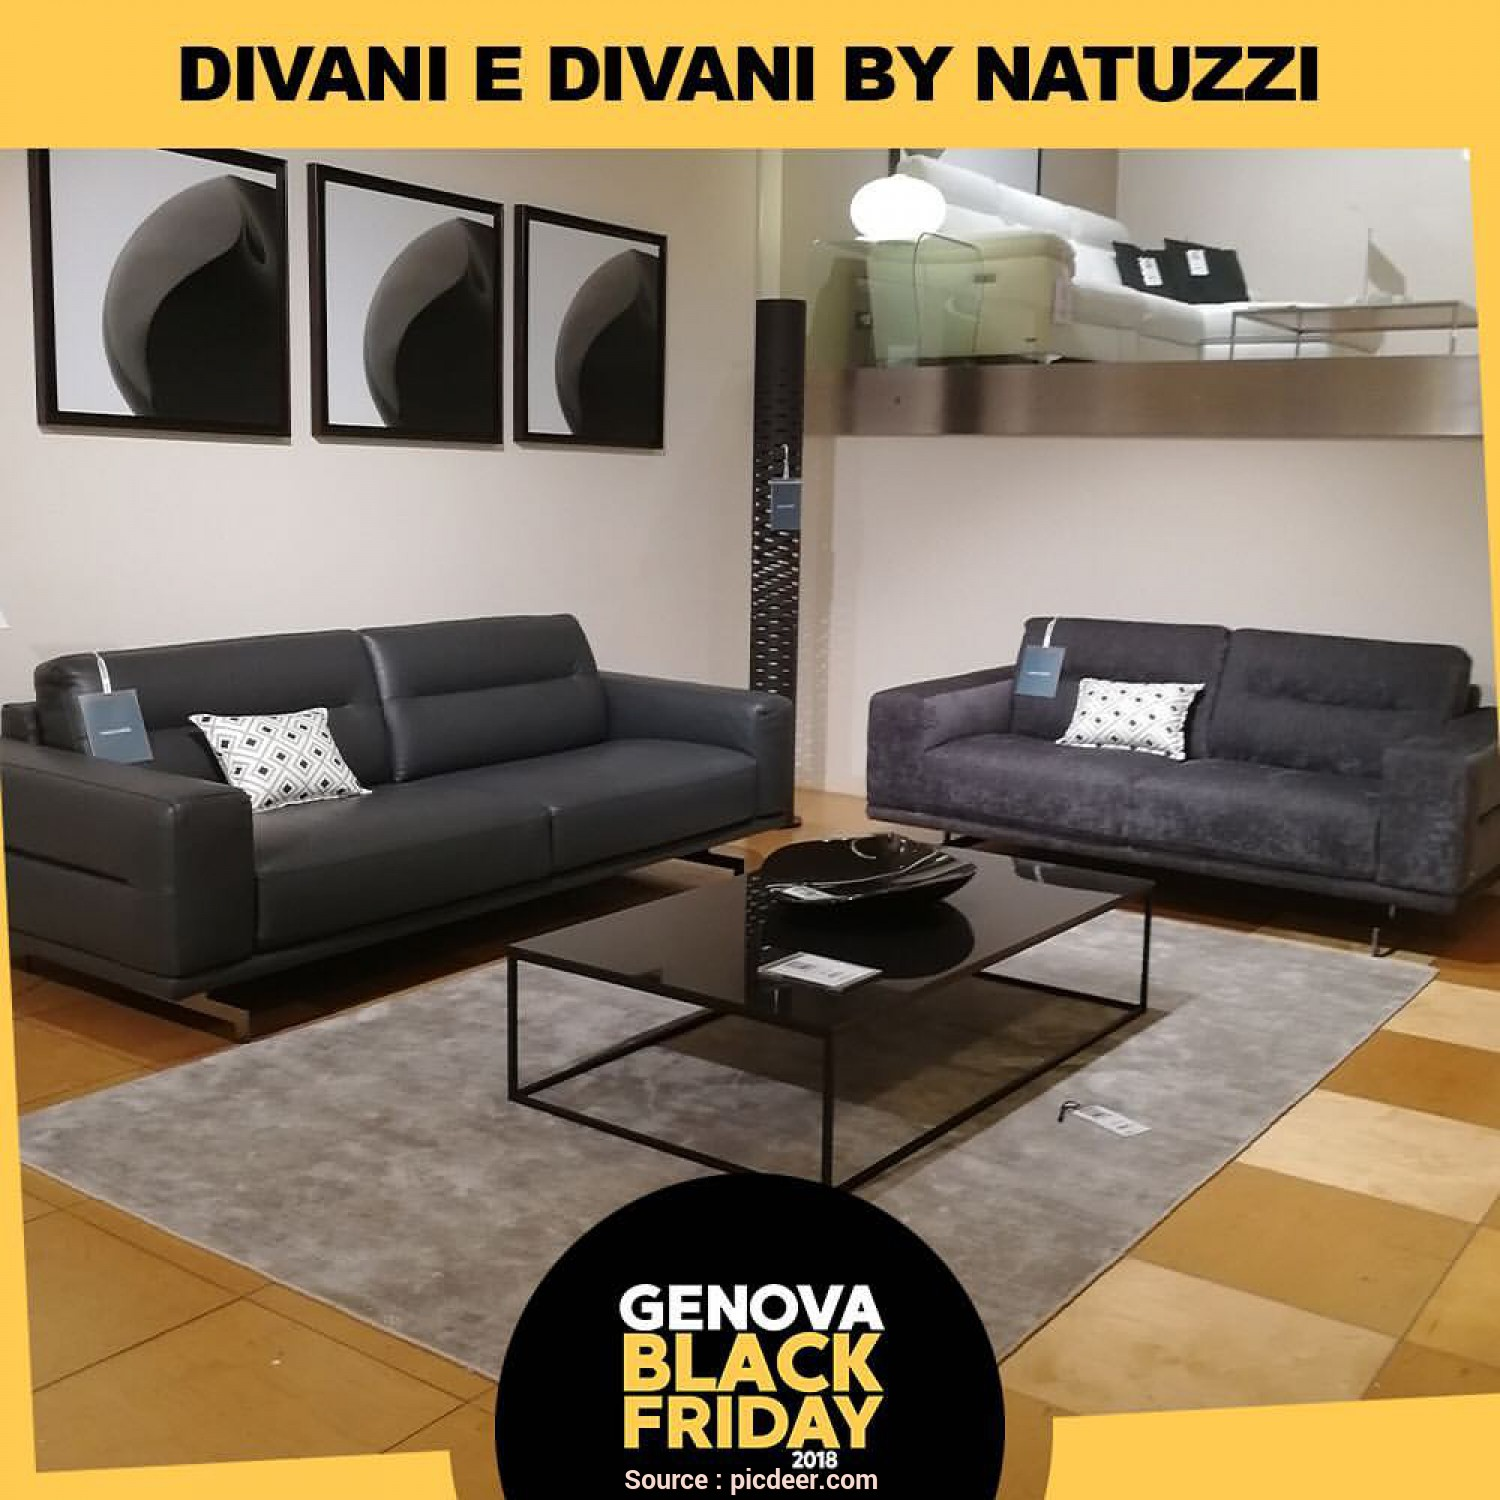 Loveable 5 Divani E Divani By Natuzzi Moncalieri - Jake Vintage